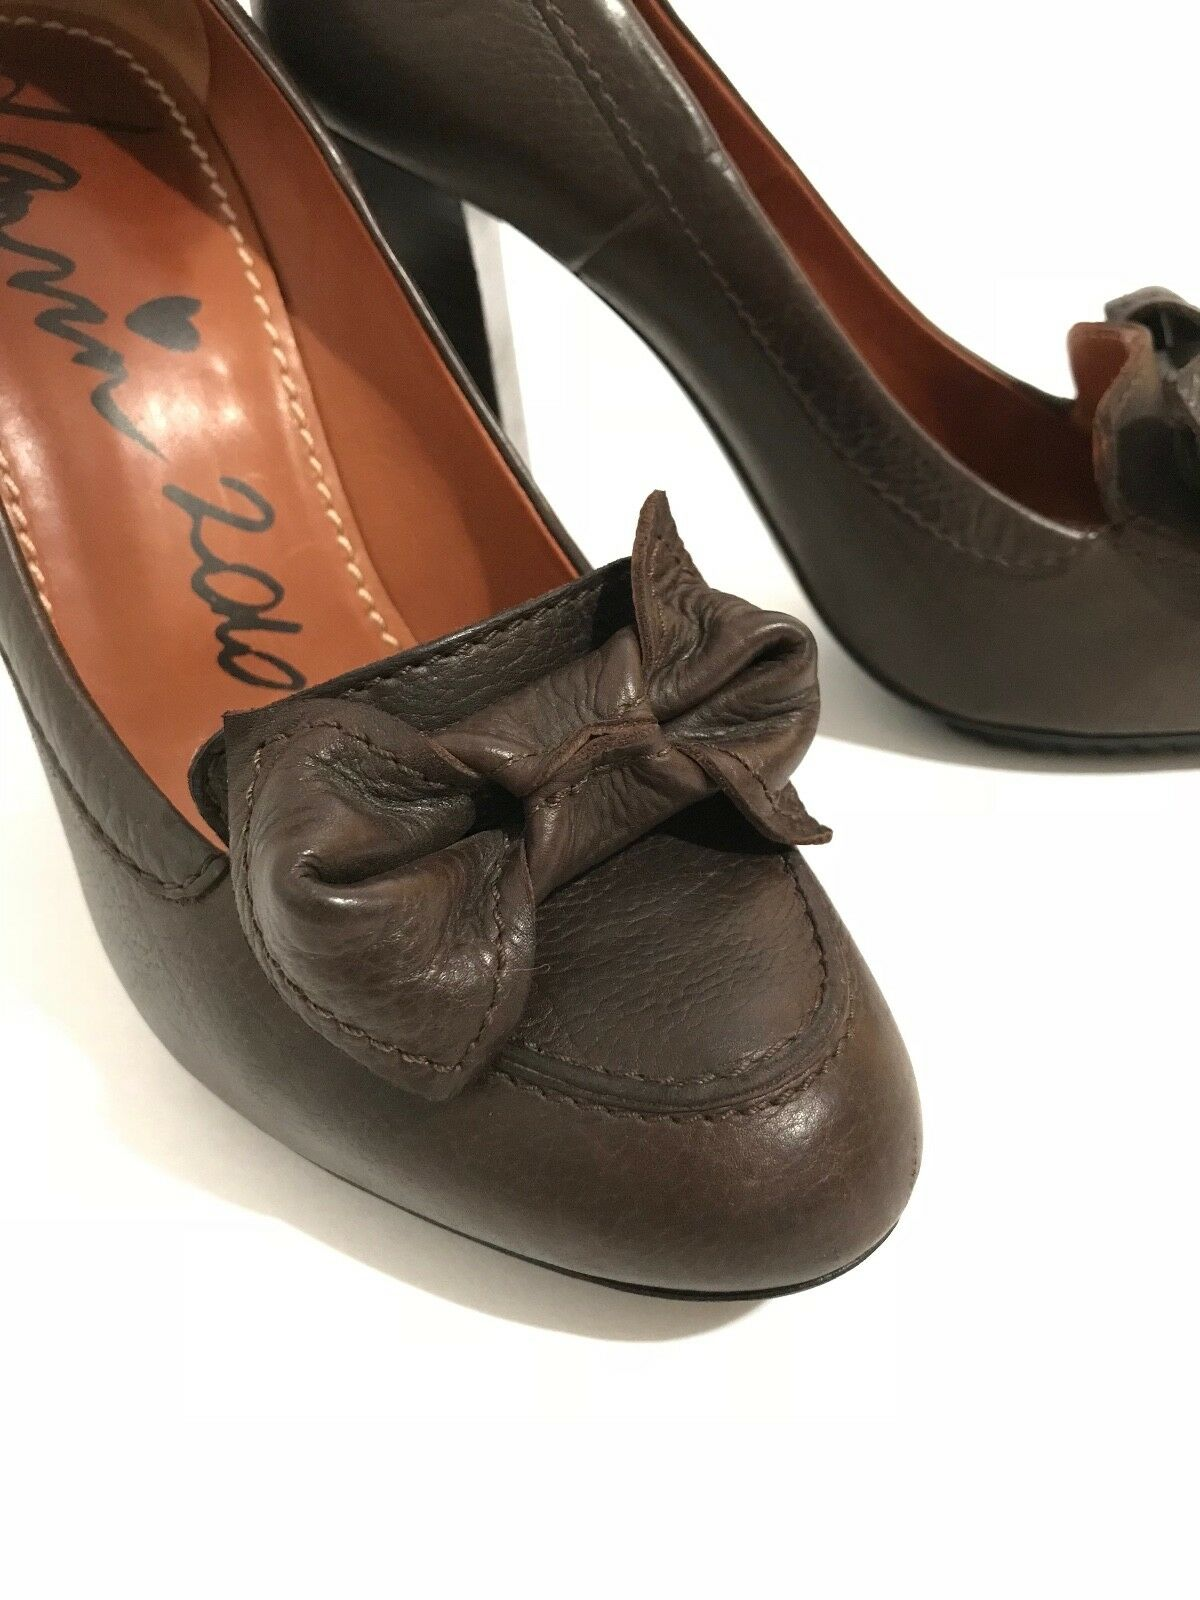 Lanvin 2010 Hiver Bow Stack Heel Brown Leather Pump Size 8